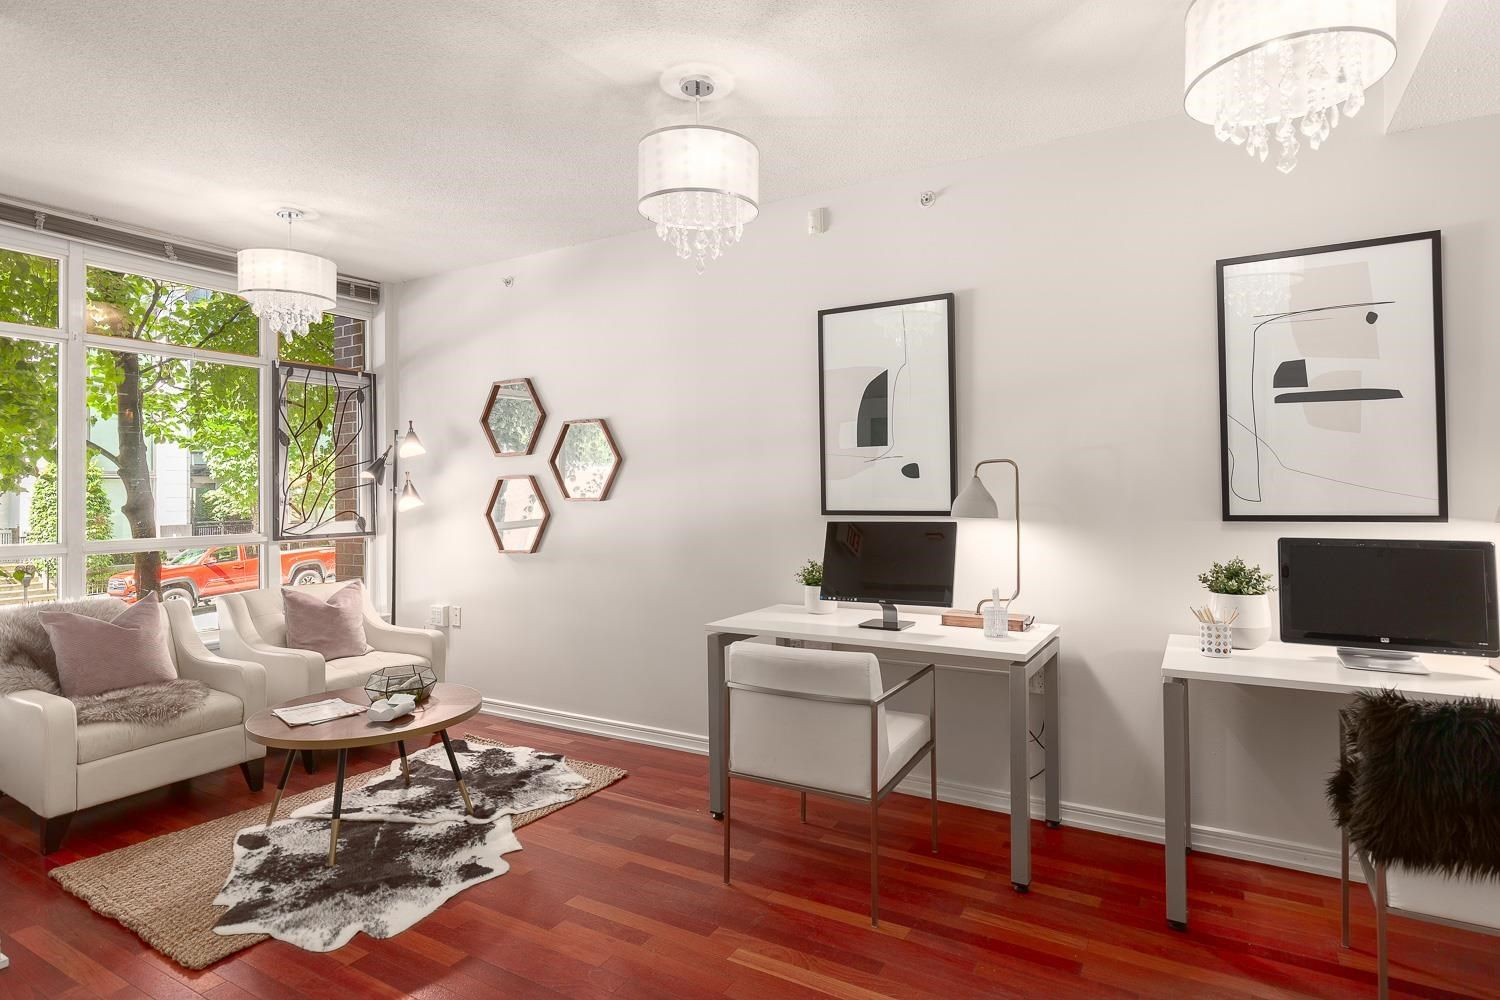 """Main Photo: 883 HELMCKEN Street in Vancouver: Downtown VW Townhouse for sale in """"The Canadian"""" (Vancouver West)  : MLS®# R2594819"""